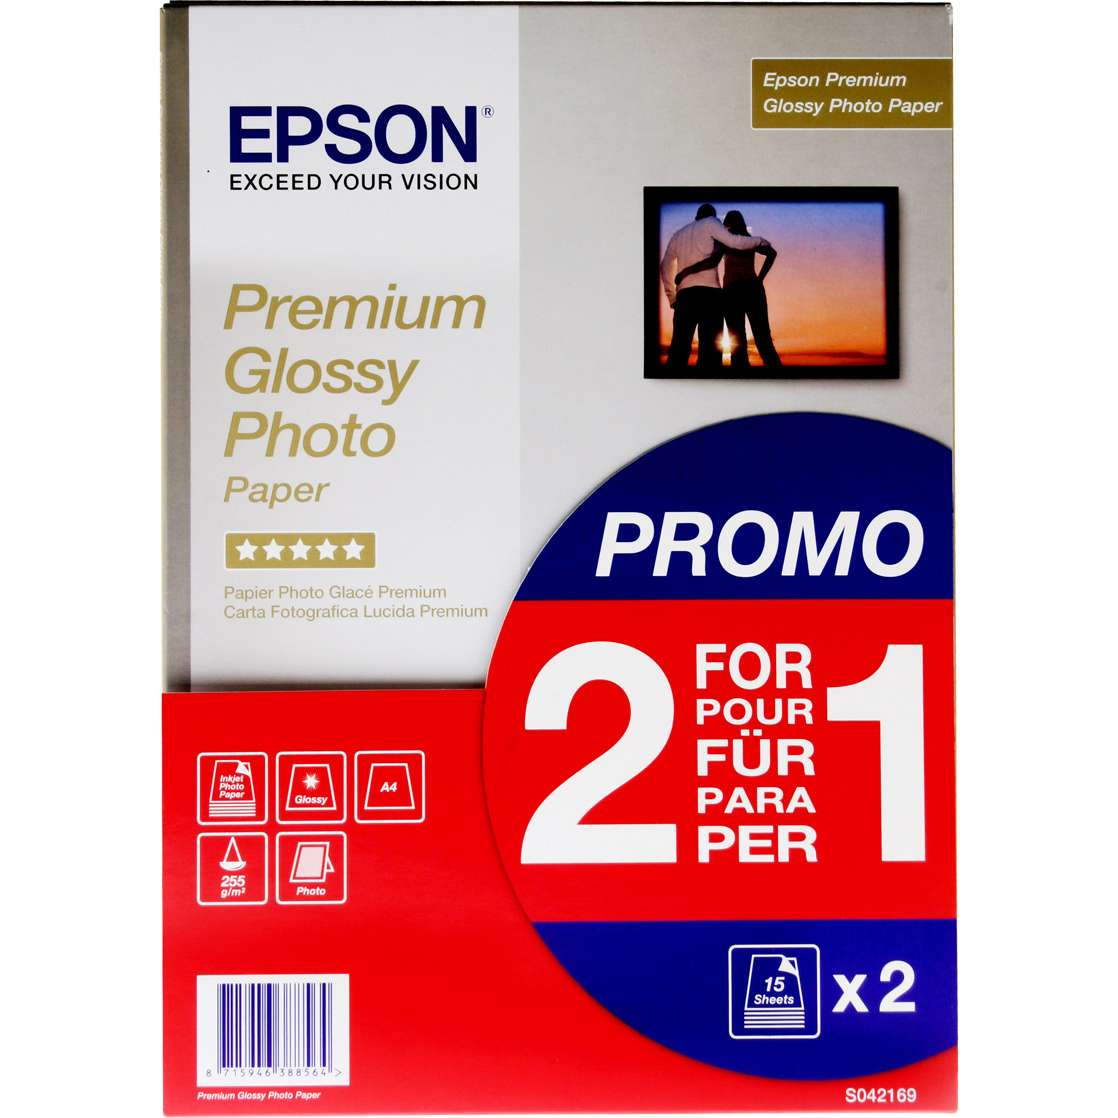 Epson Prem Glossy A4 Photo 15 Sheets BOGOF